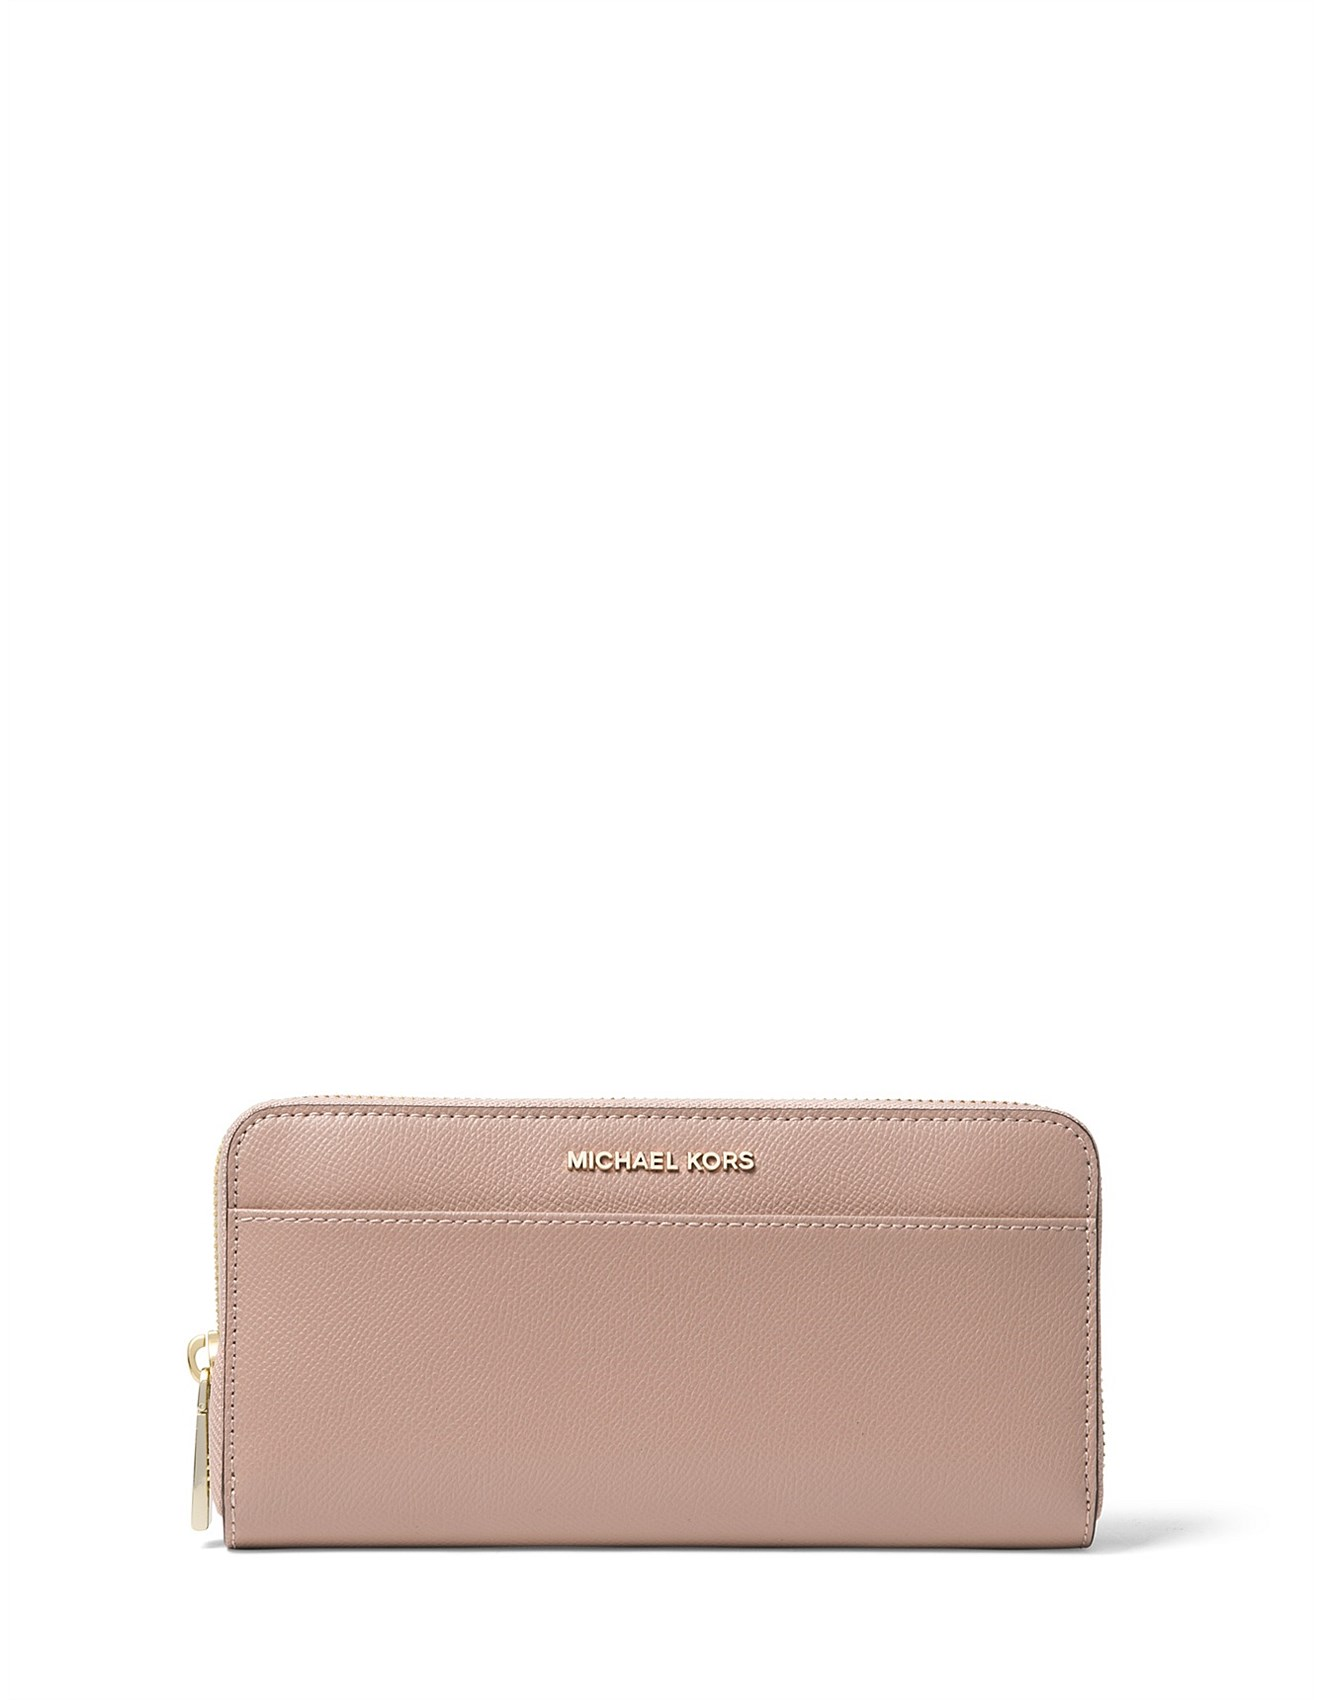 87b8575986698b Women's Small Leather Goods - Jet Set Saffiano Leather Continental Wallet